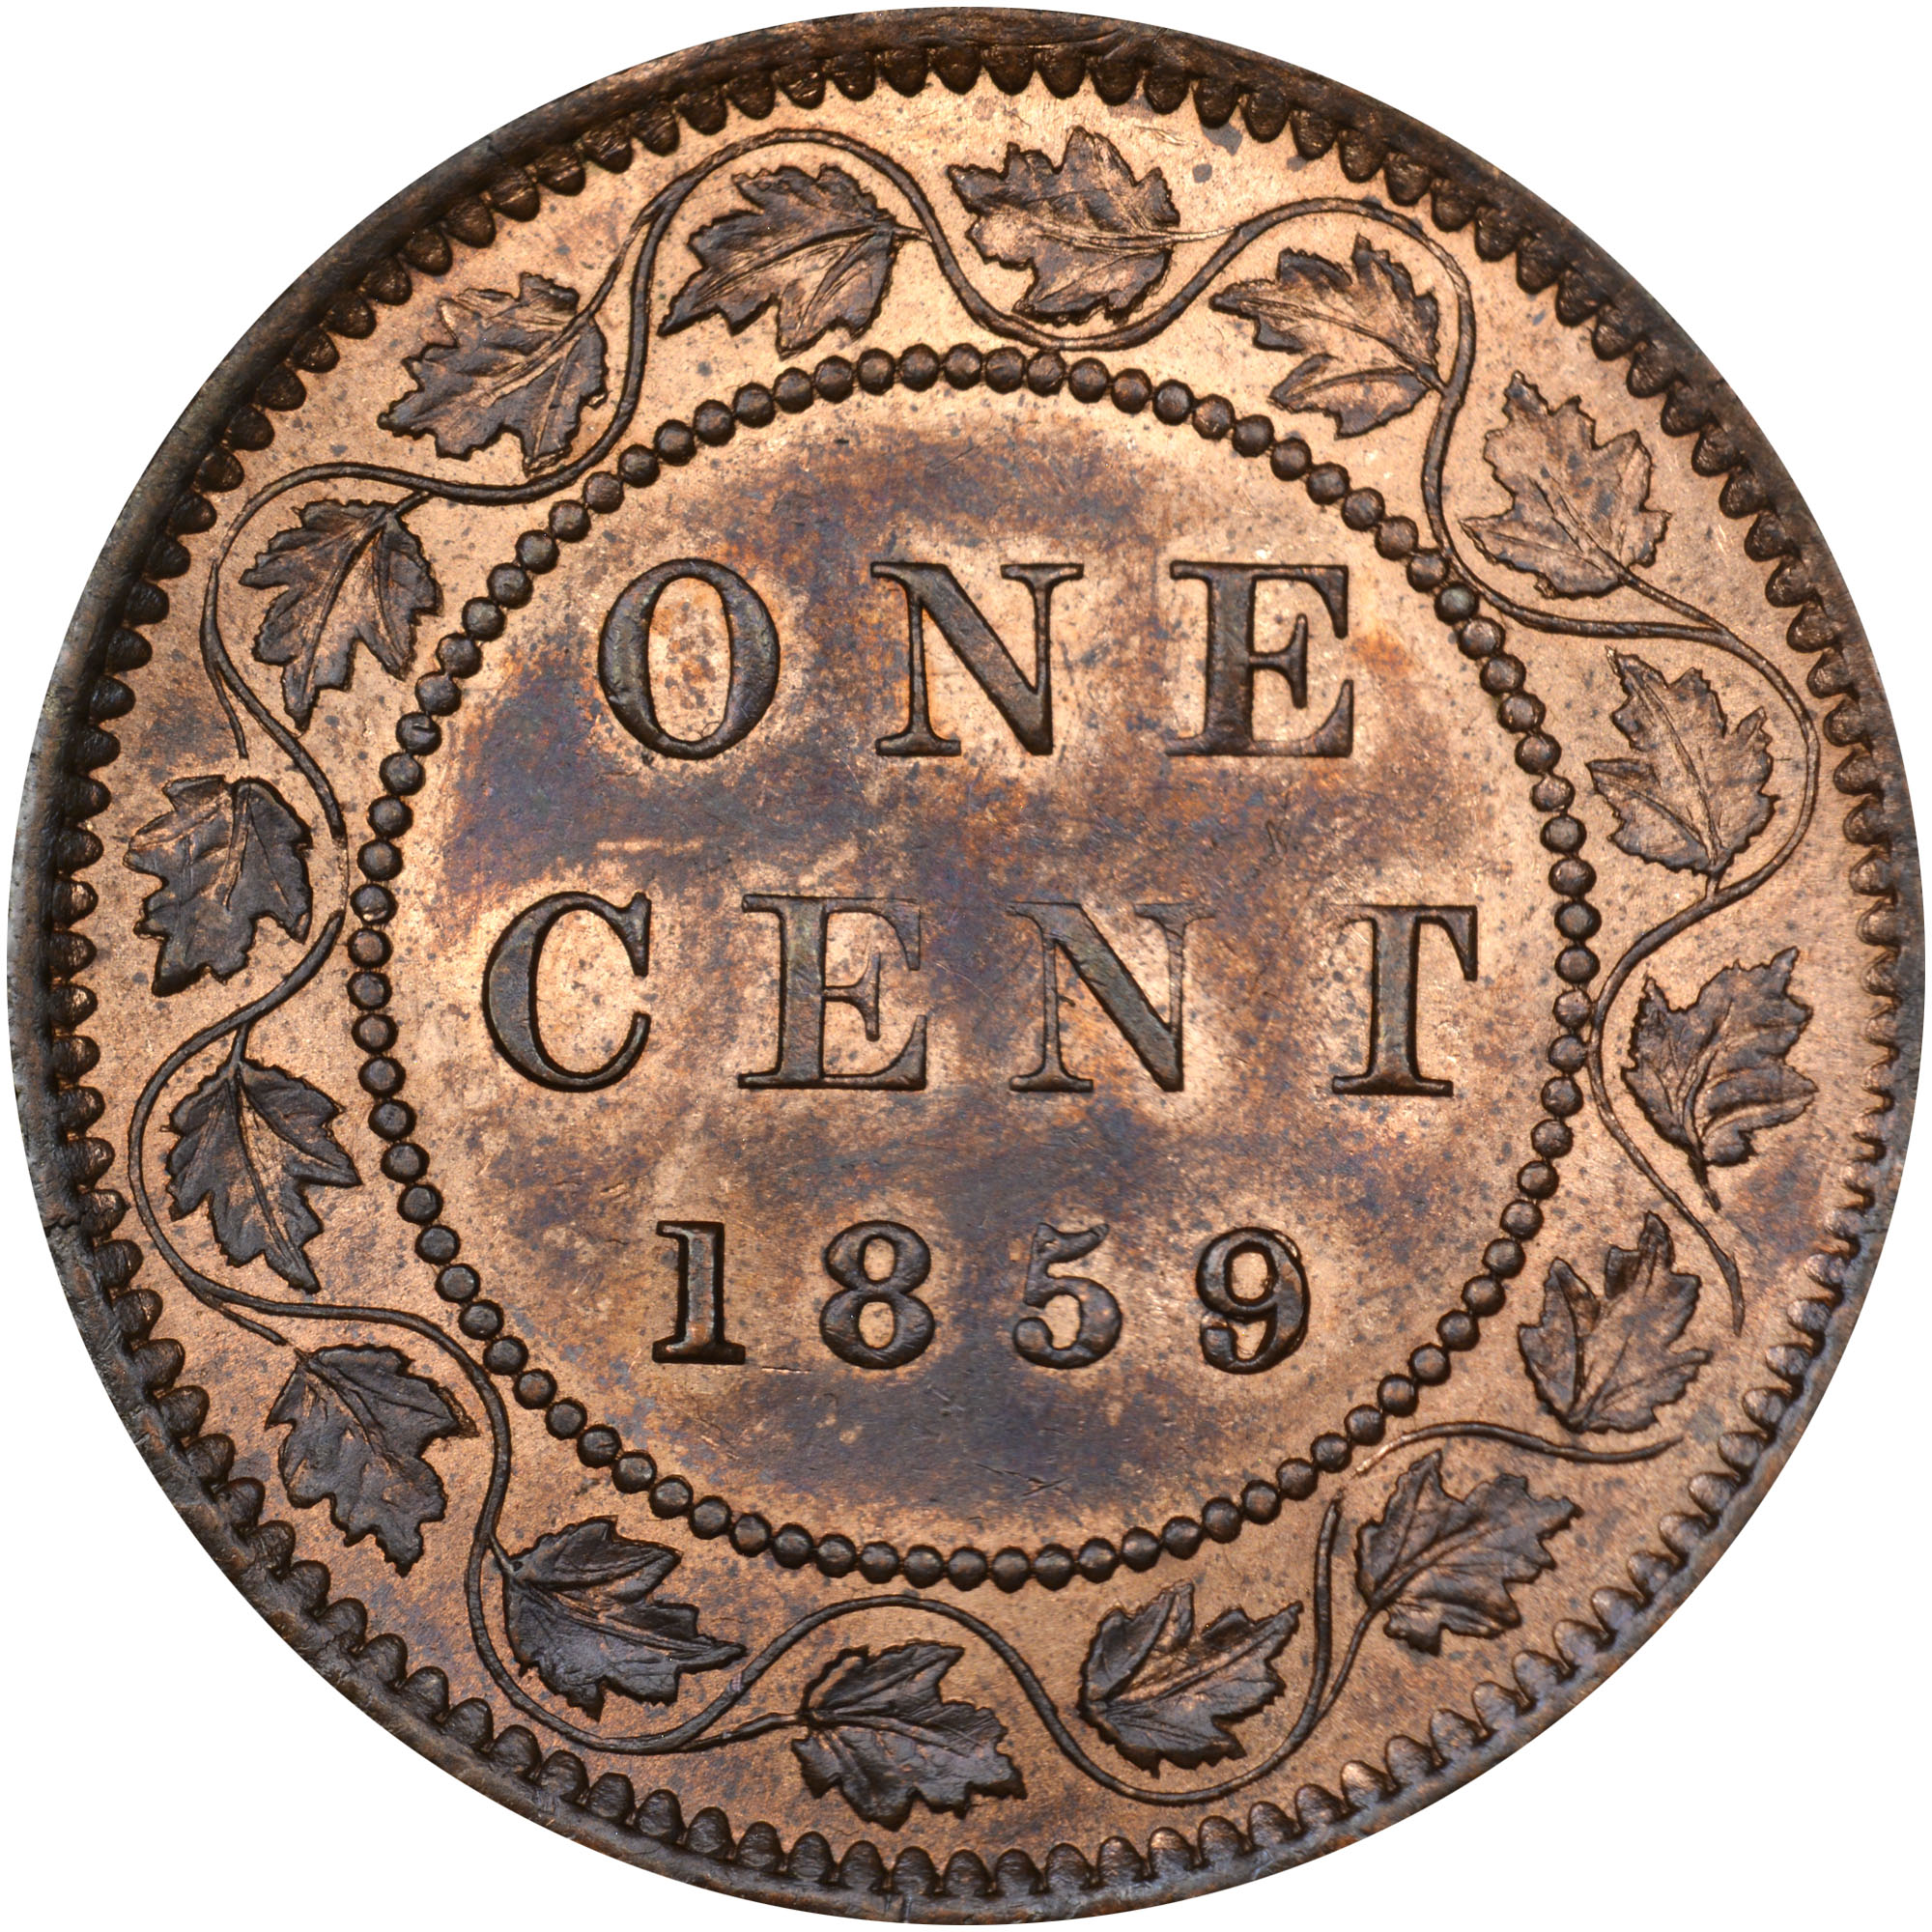 1858-1859/8 Canada Cent reverse